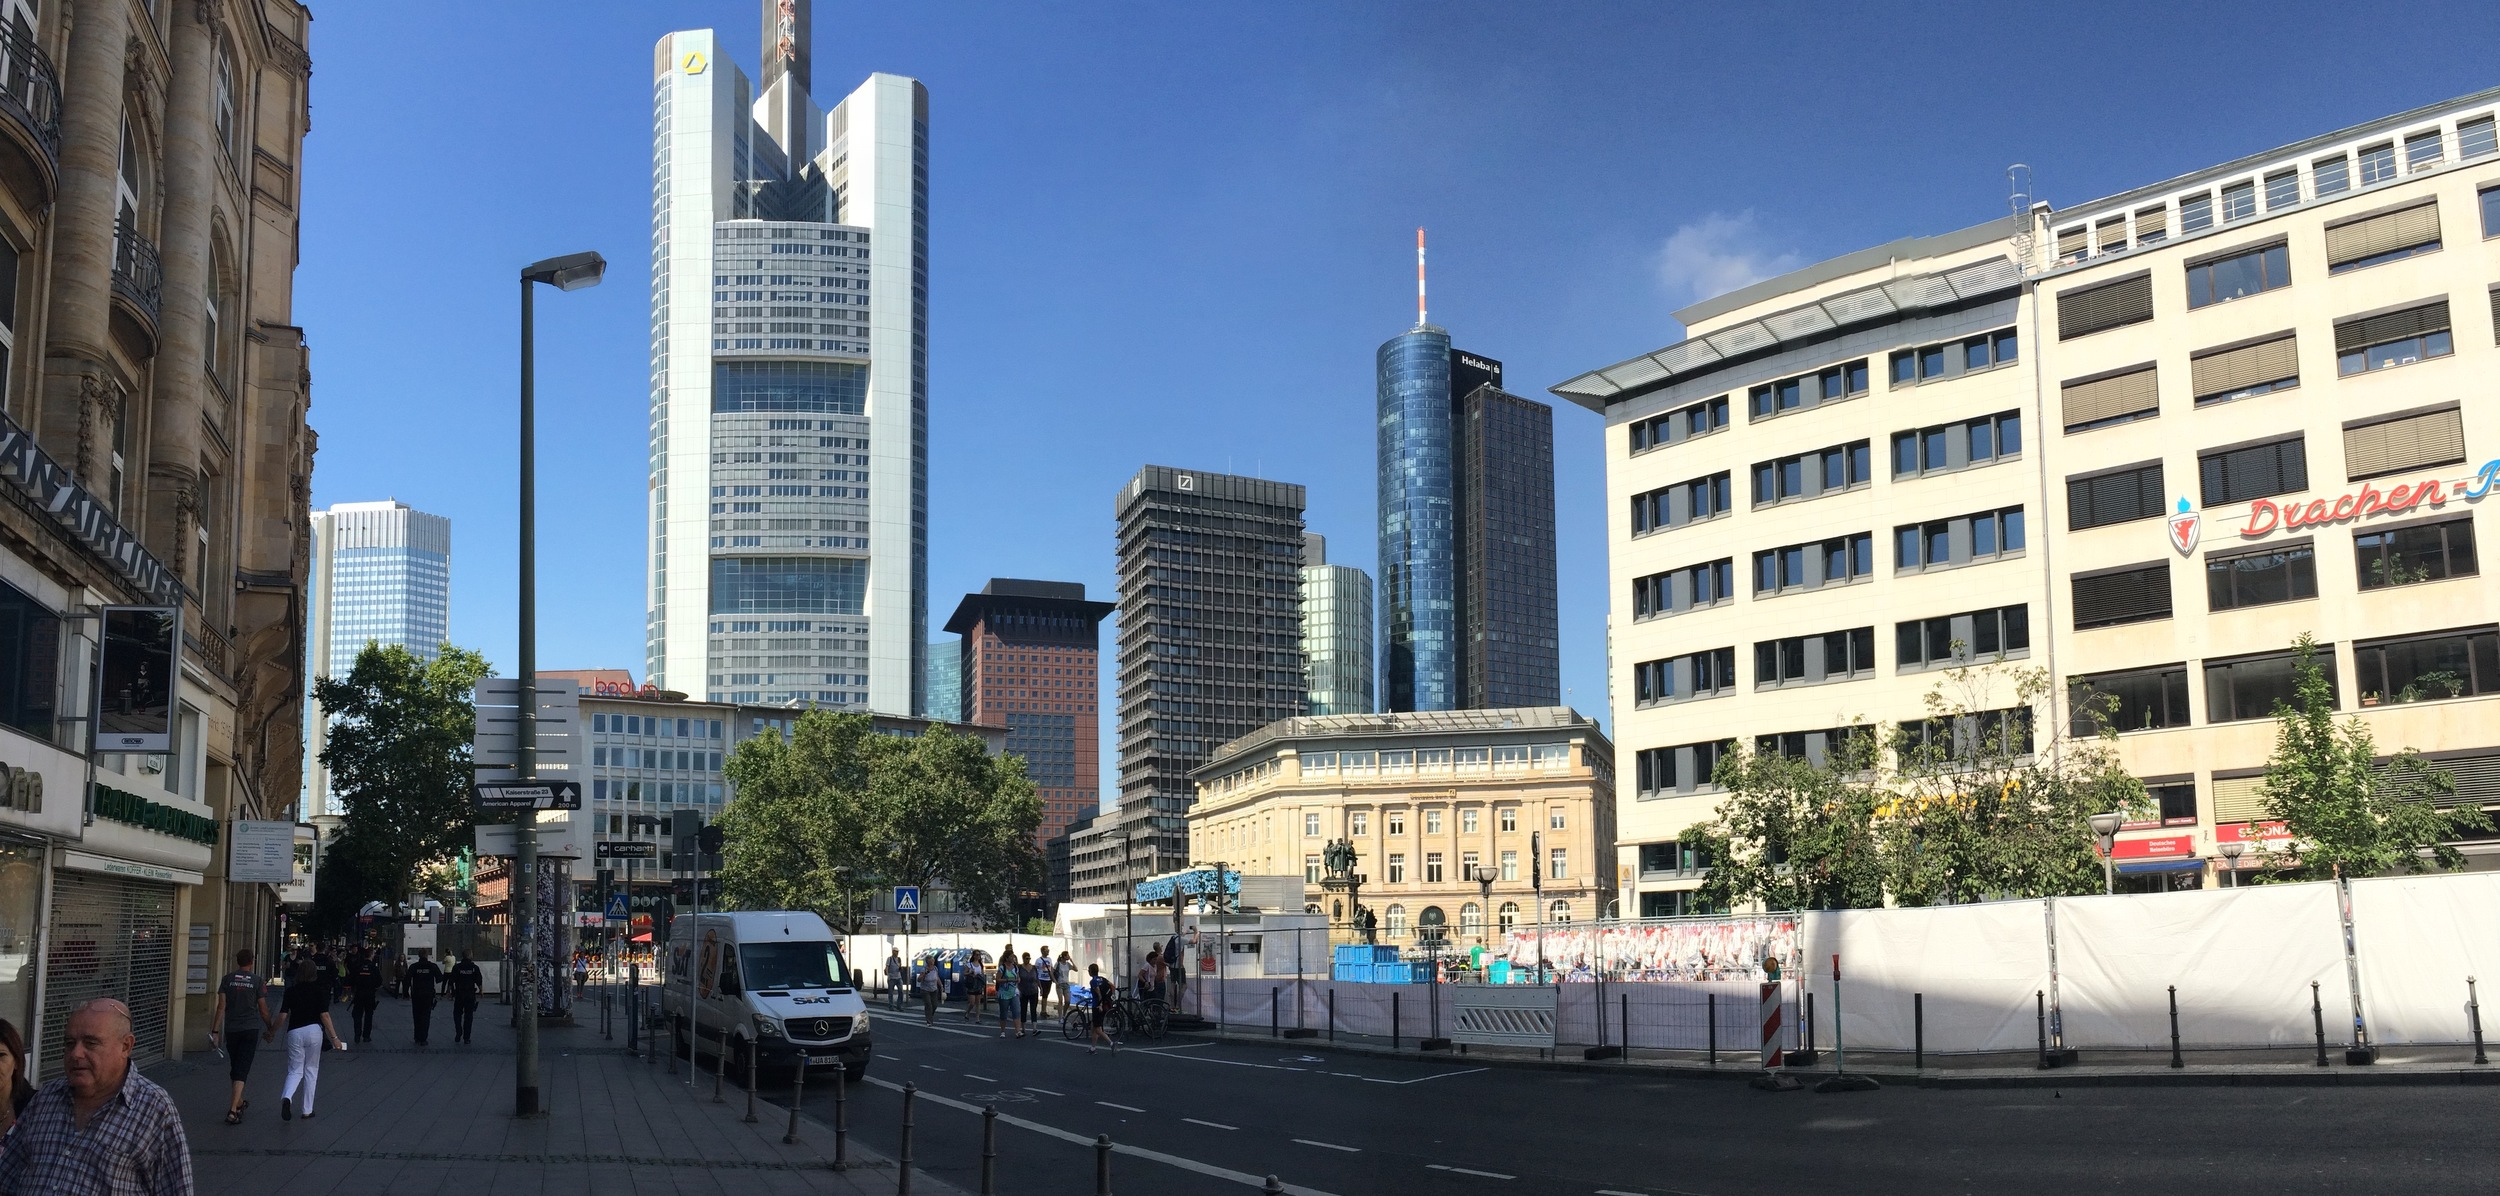 Downtown Frankfurt.